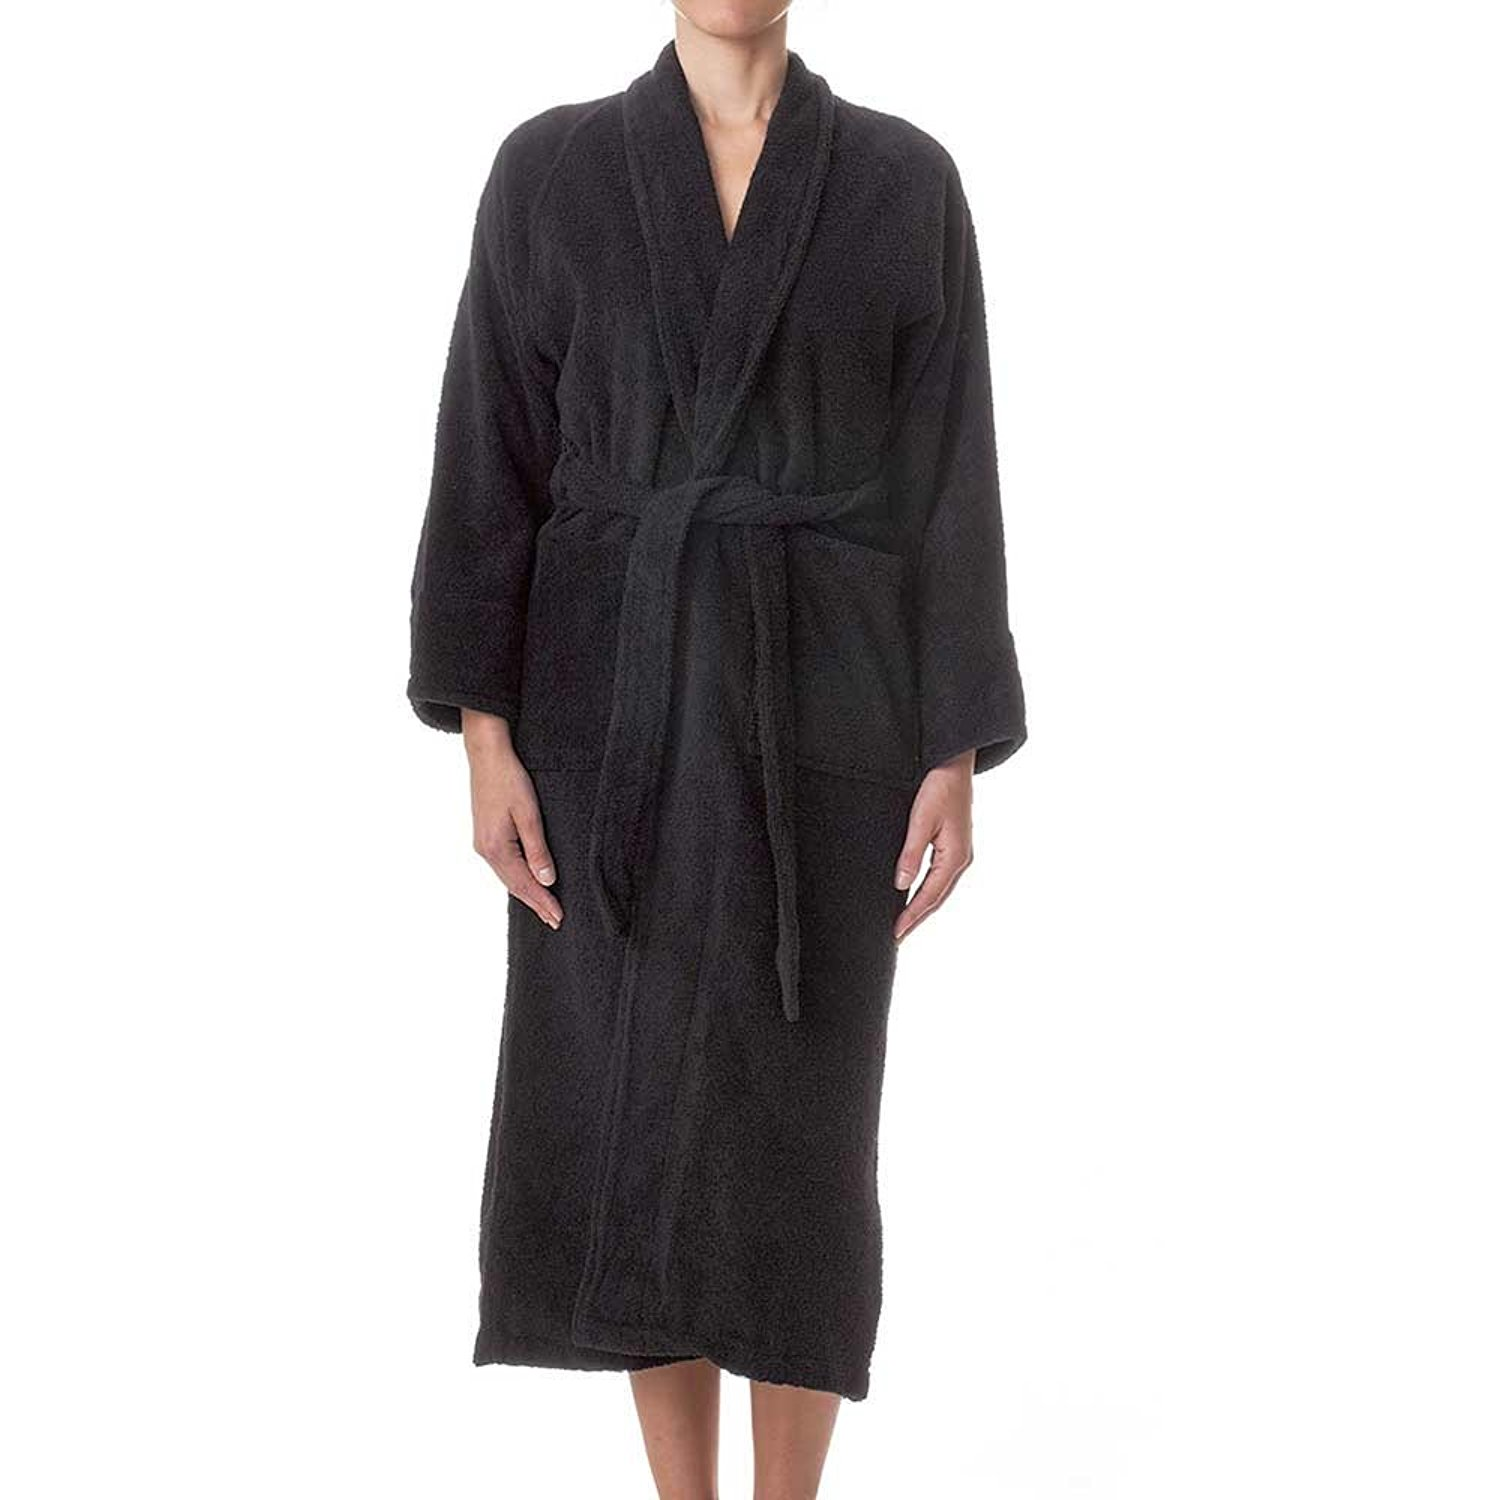 6058eadfdb Get Quotations · Unisex Terry Cloth Bathrobe- 100% Long Staple Cotton  Hotel Spa Robes - Classic